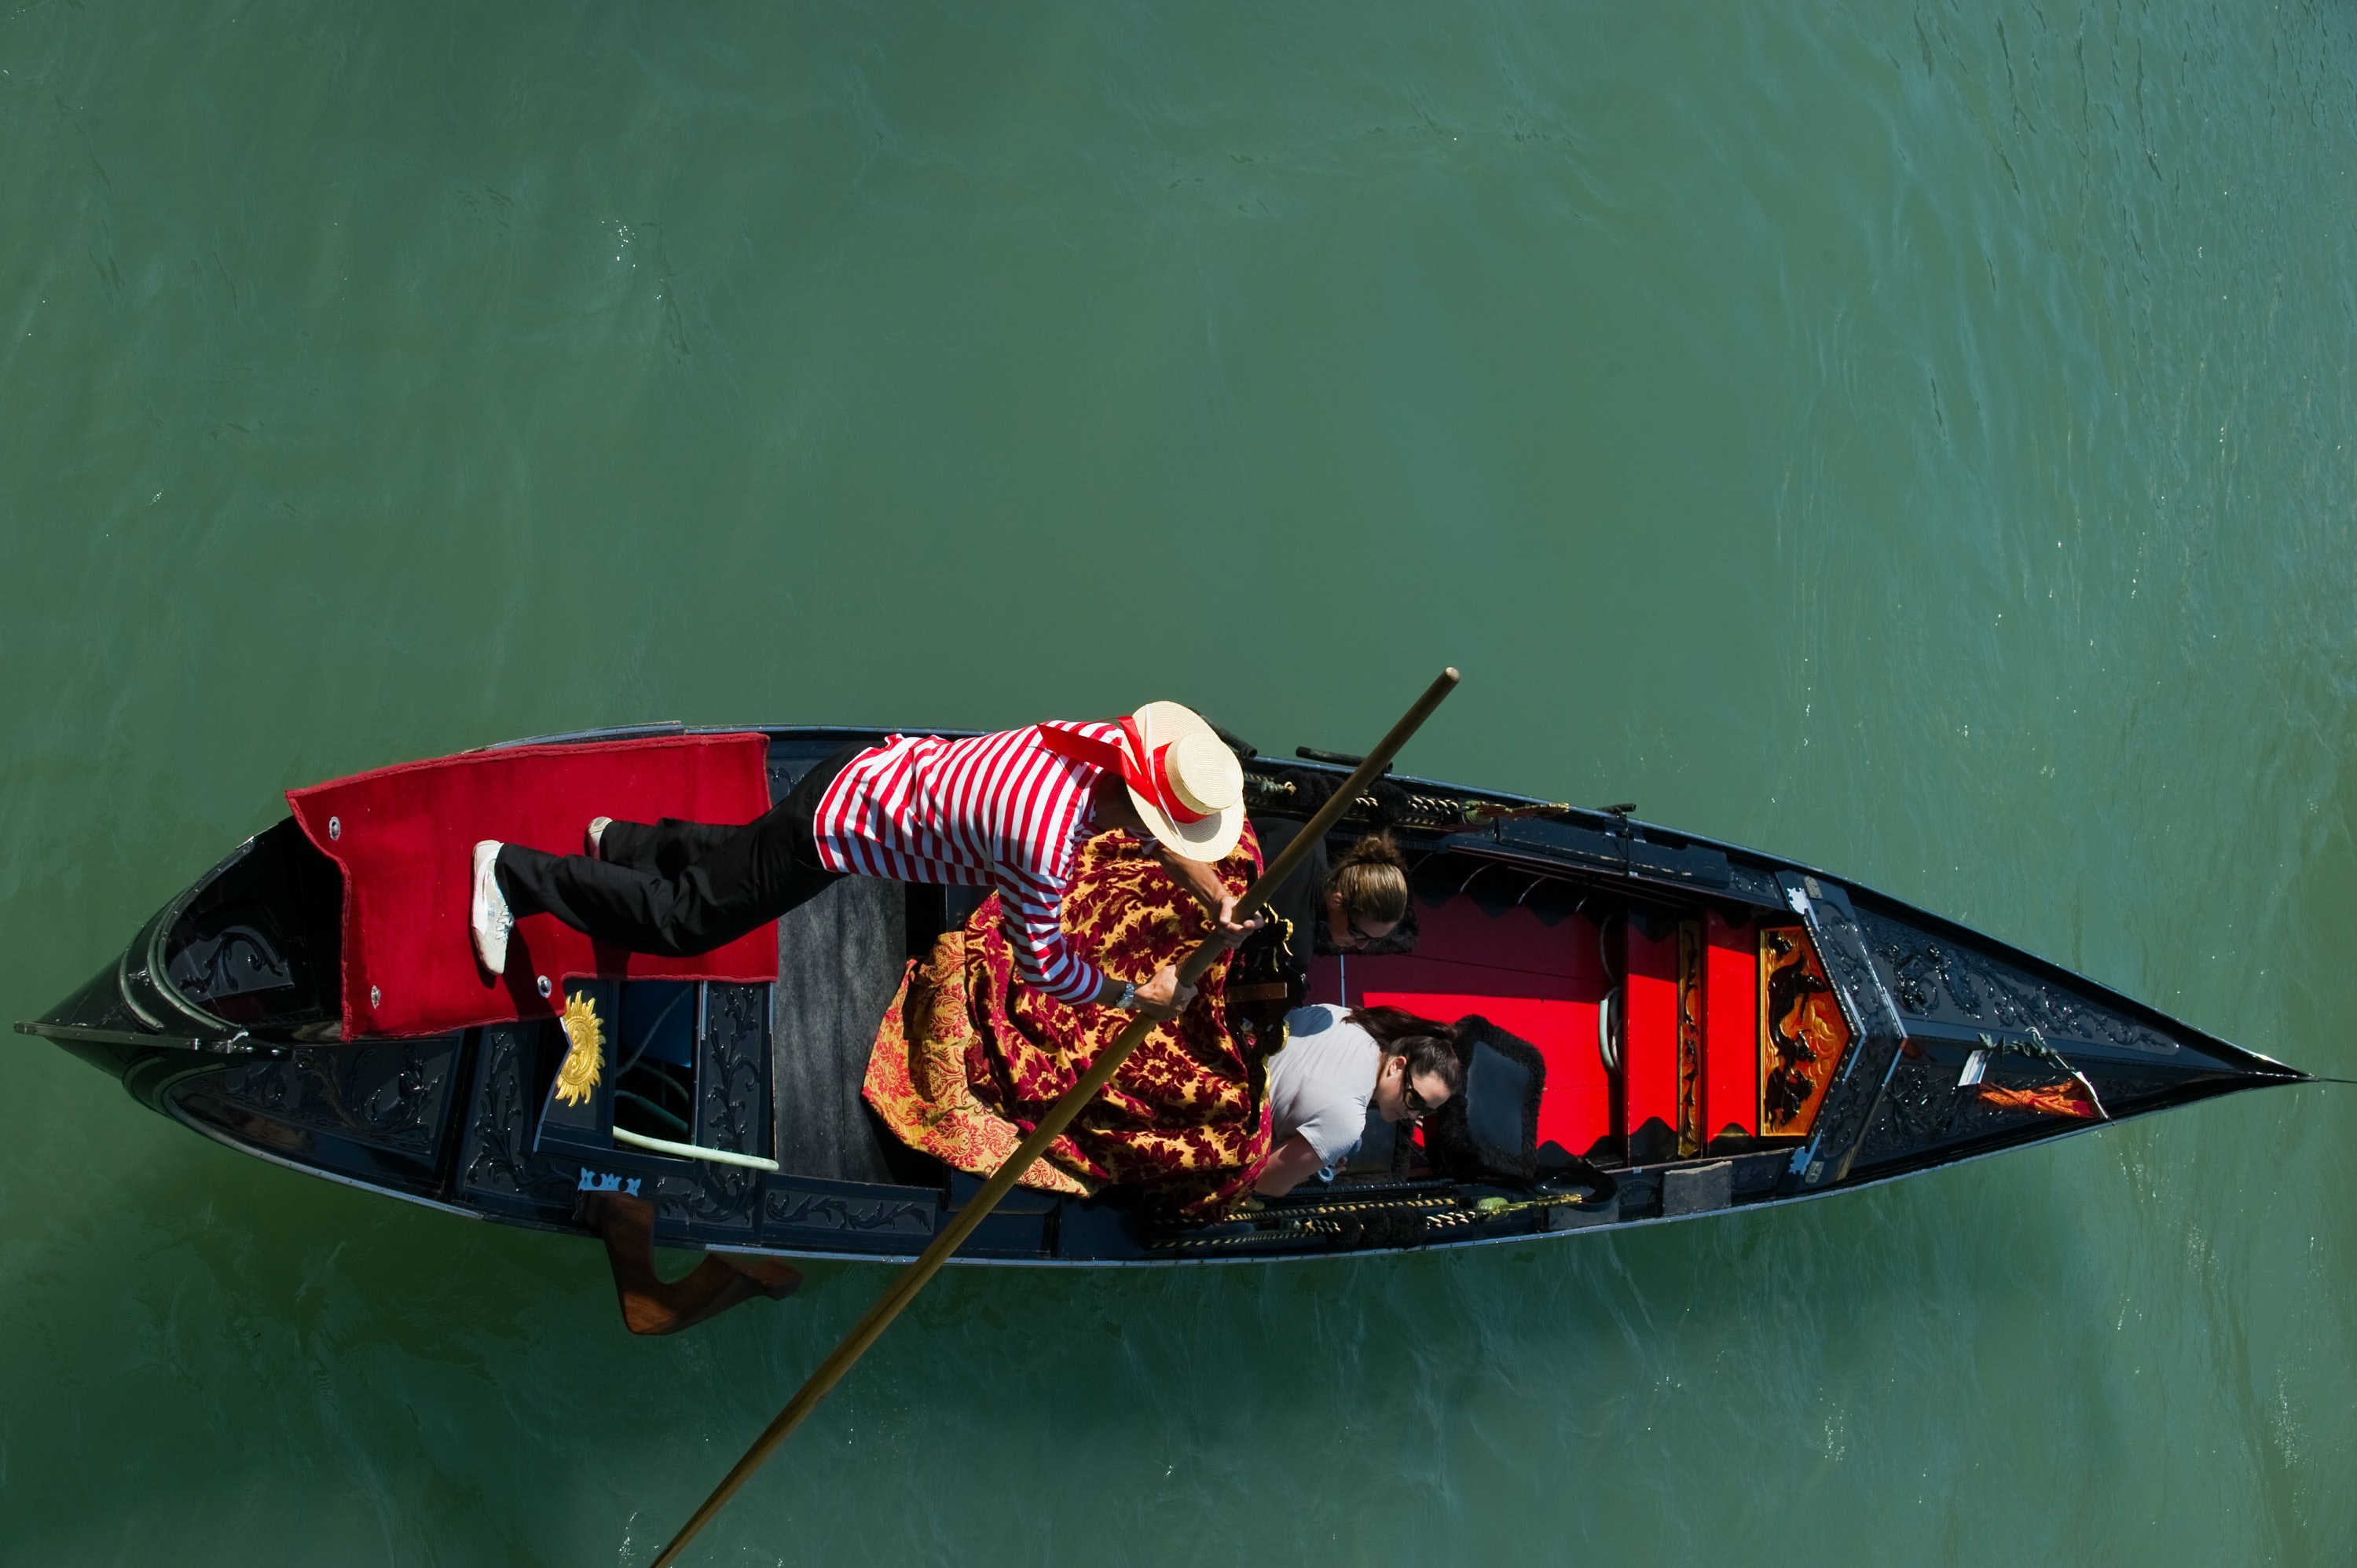 two men riding boat on body of water during day